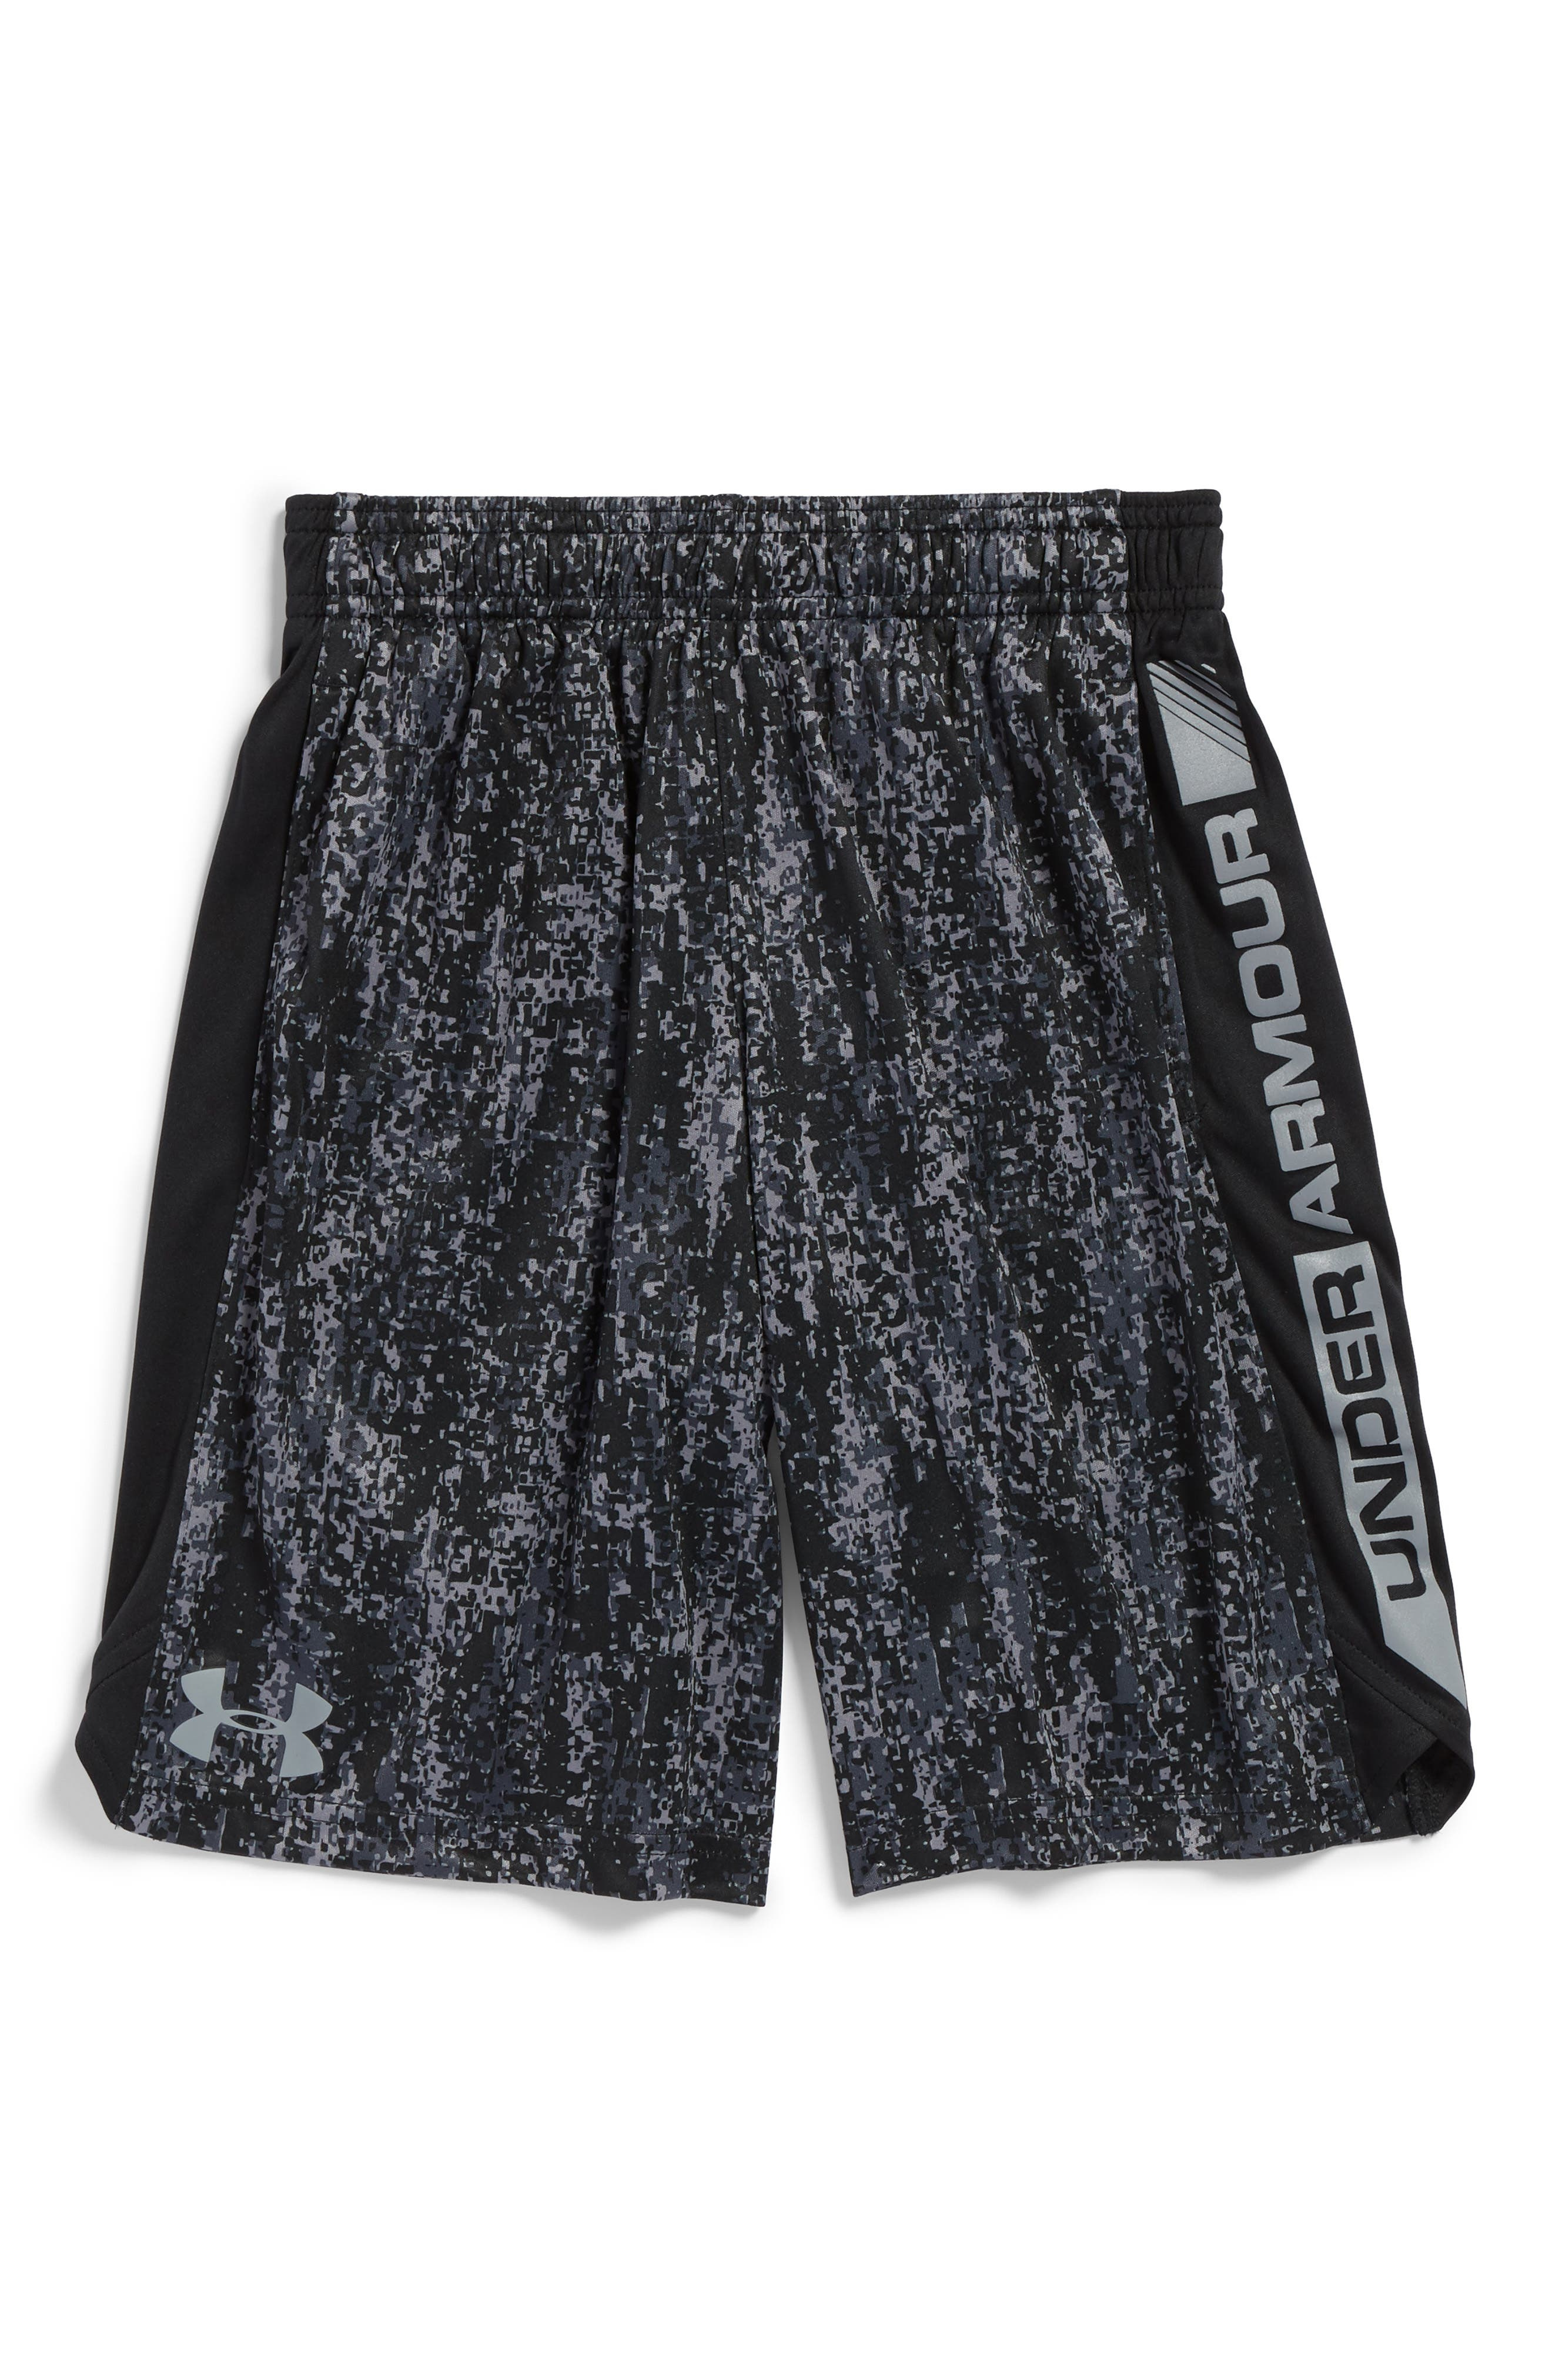 Eliminator Athletic HeatGear<sup>®</sup> Shorts,                         Main,                         color, Black/ Steel